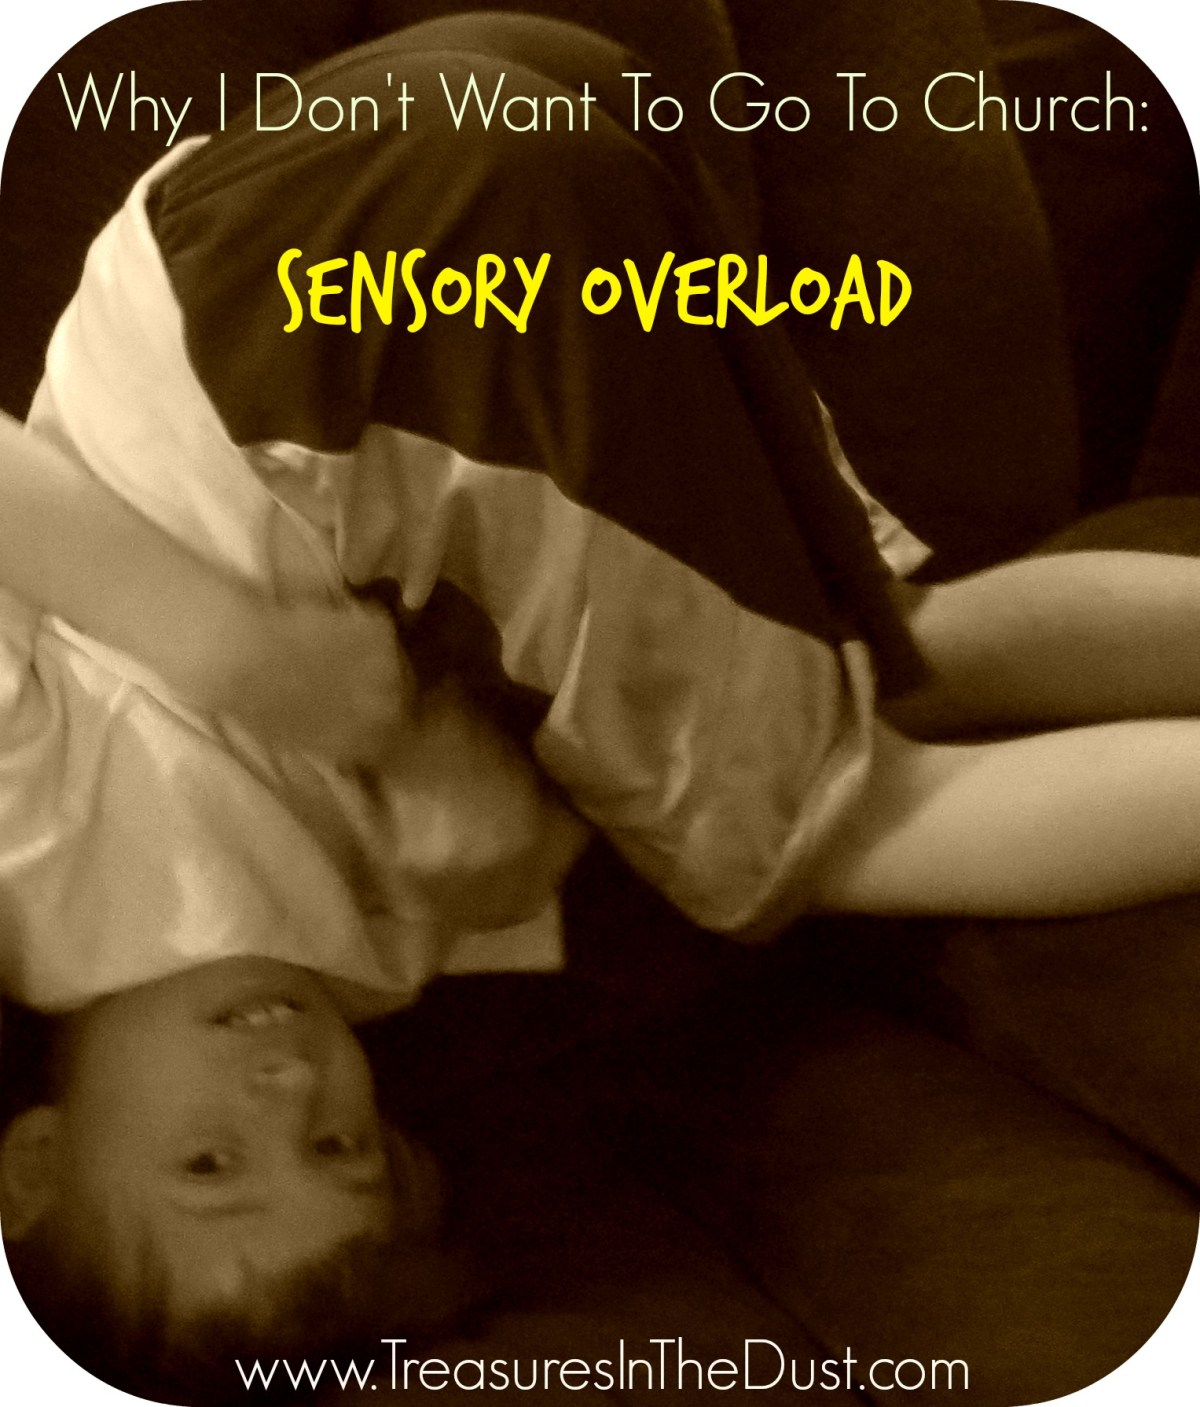 Why I Don't Want To Go To Church: Sensory Overload